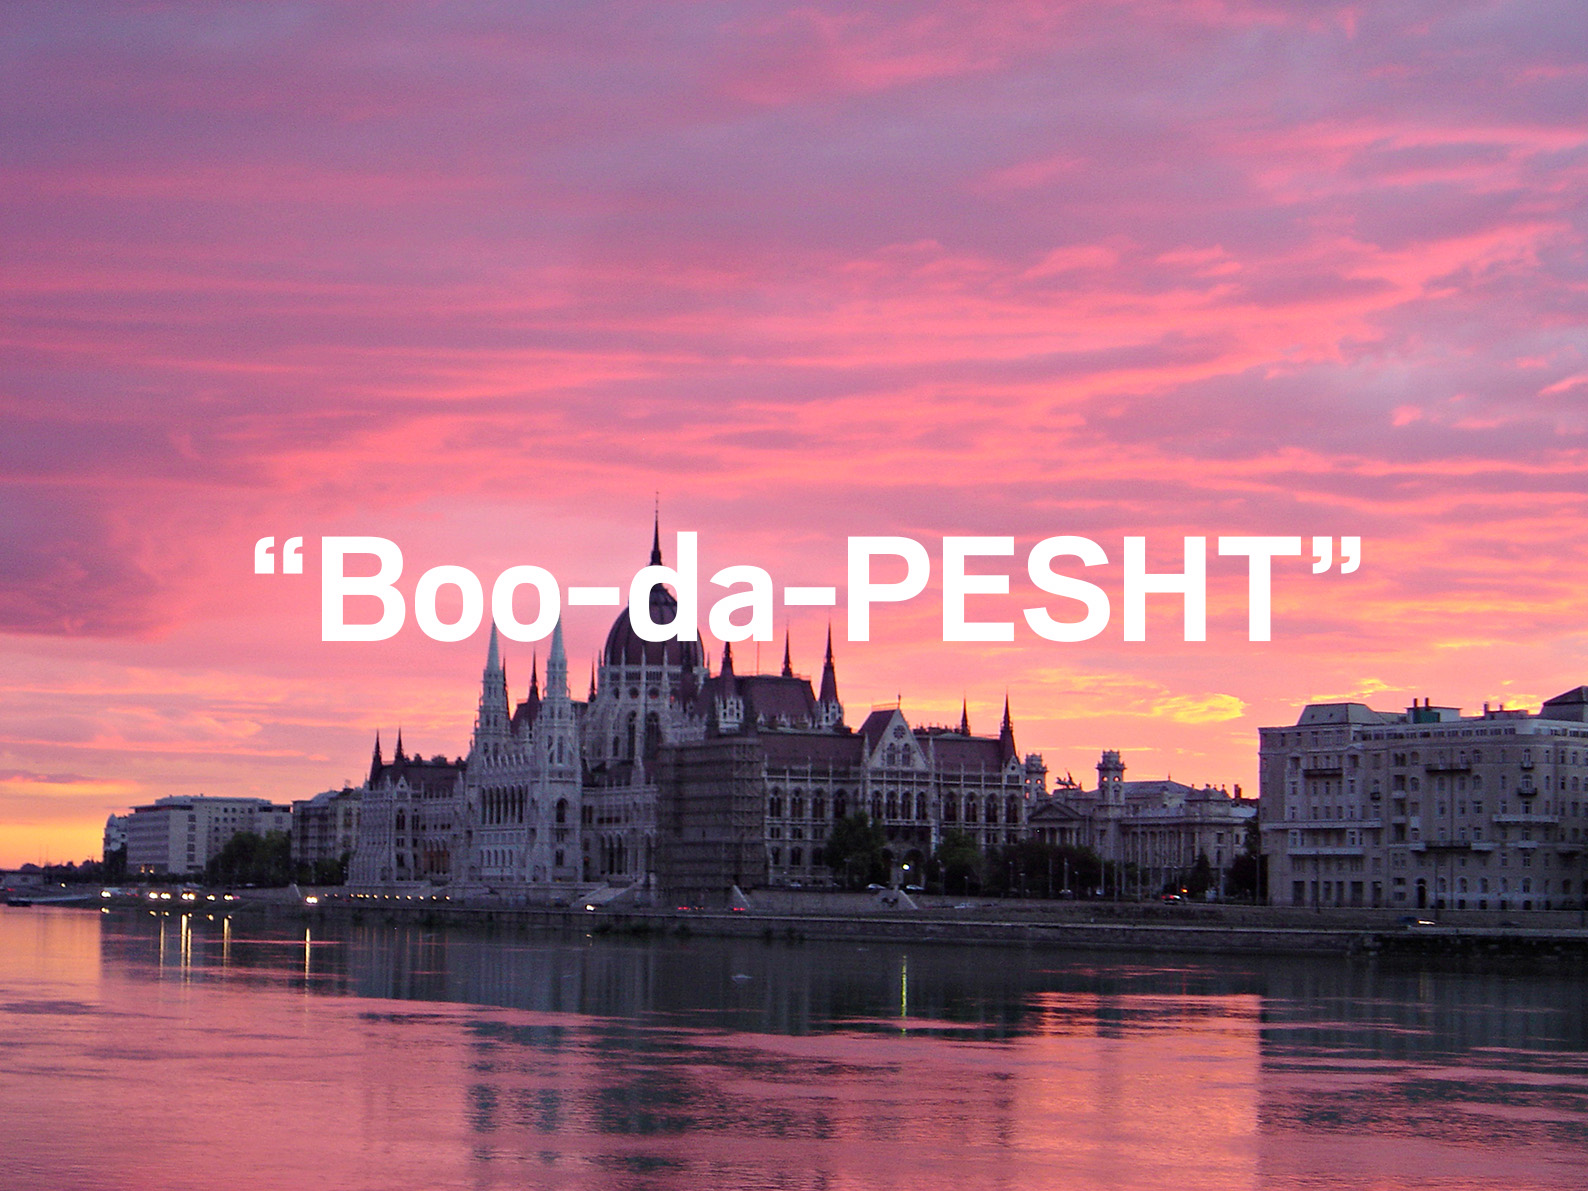 11 place names you've been saying wrong all along